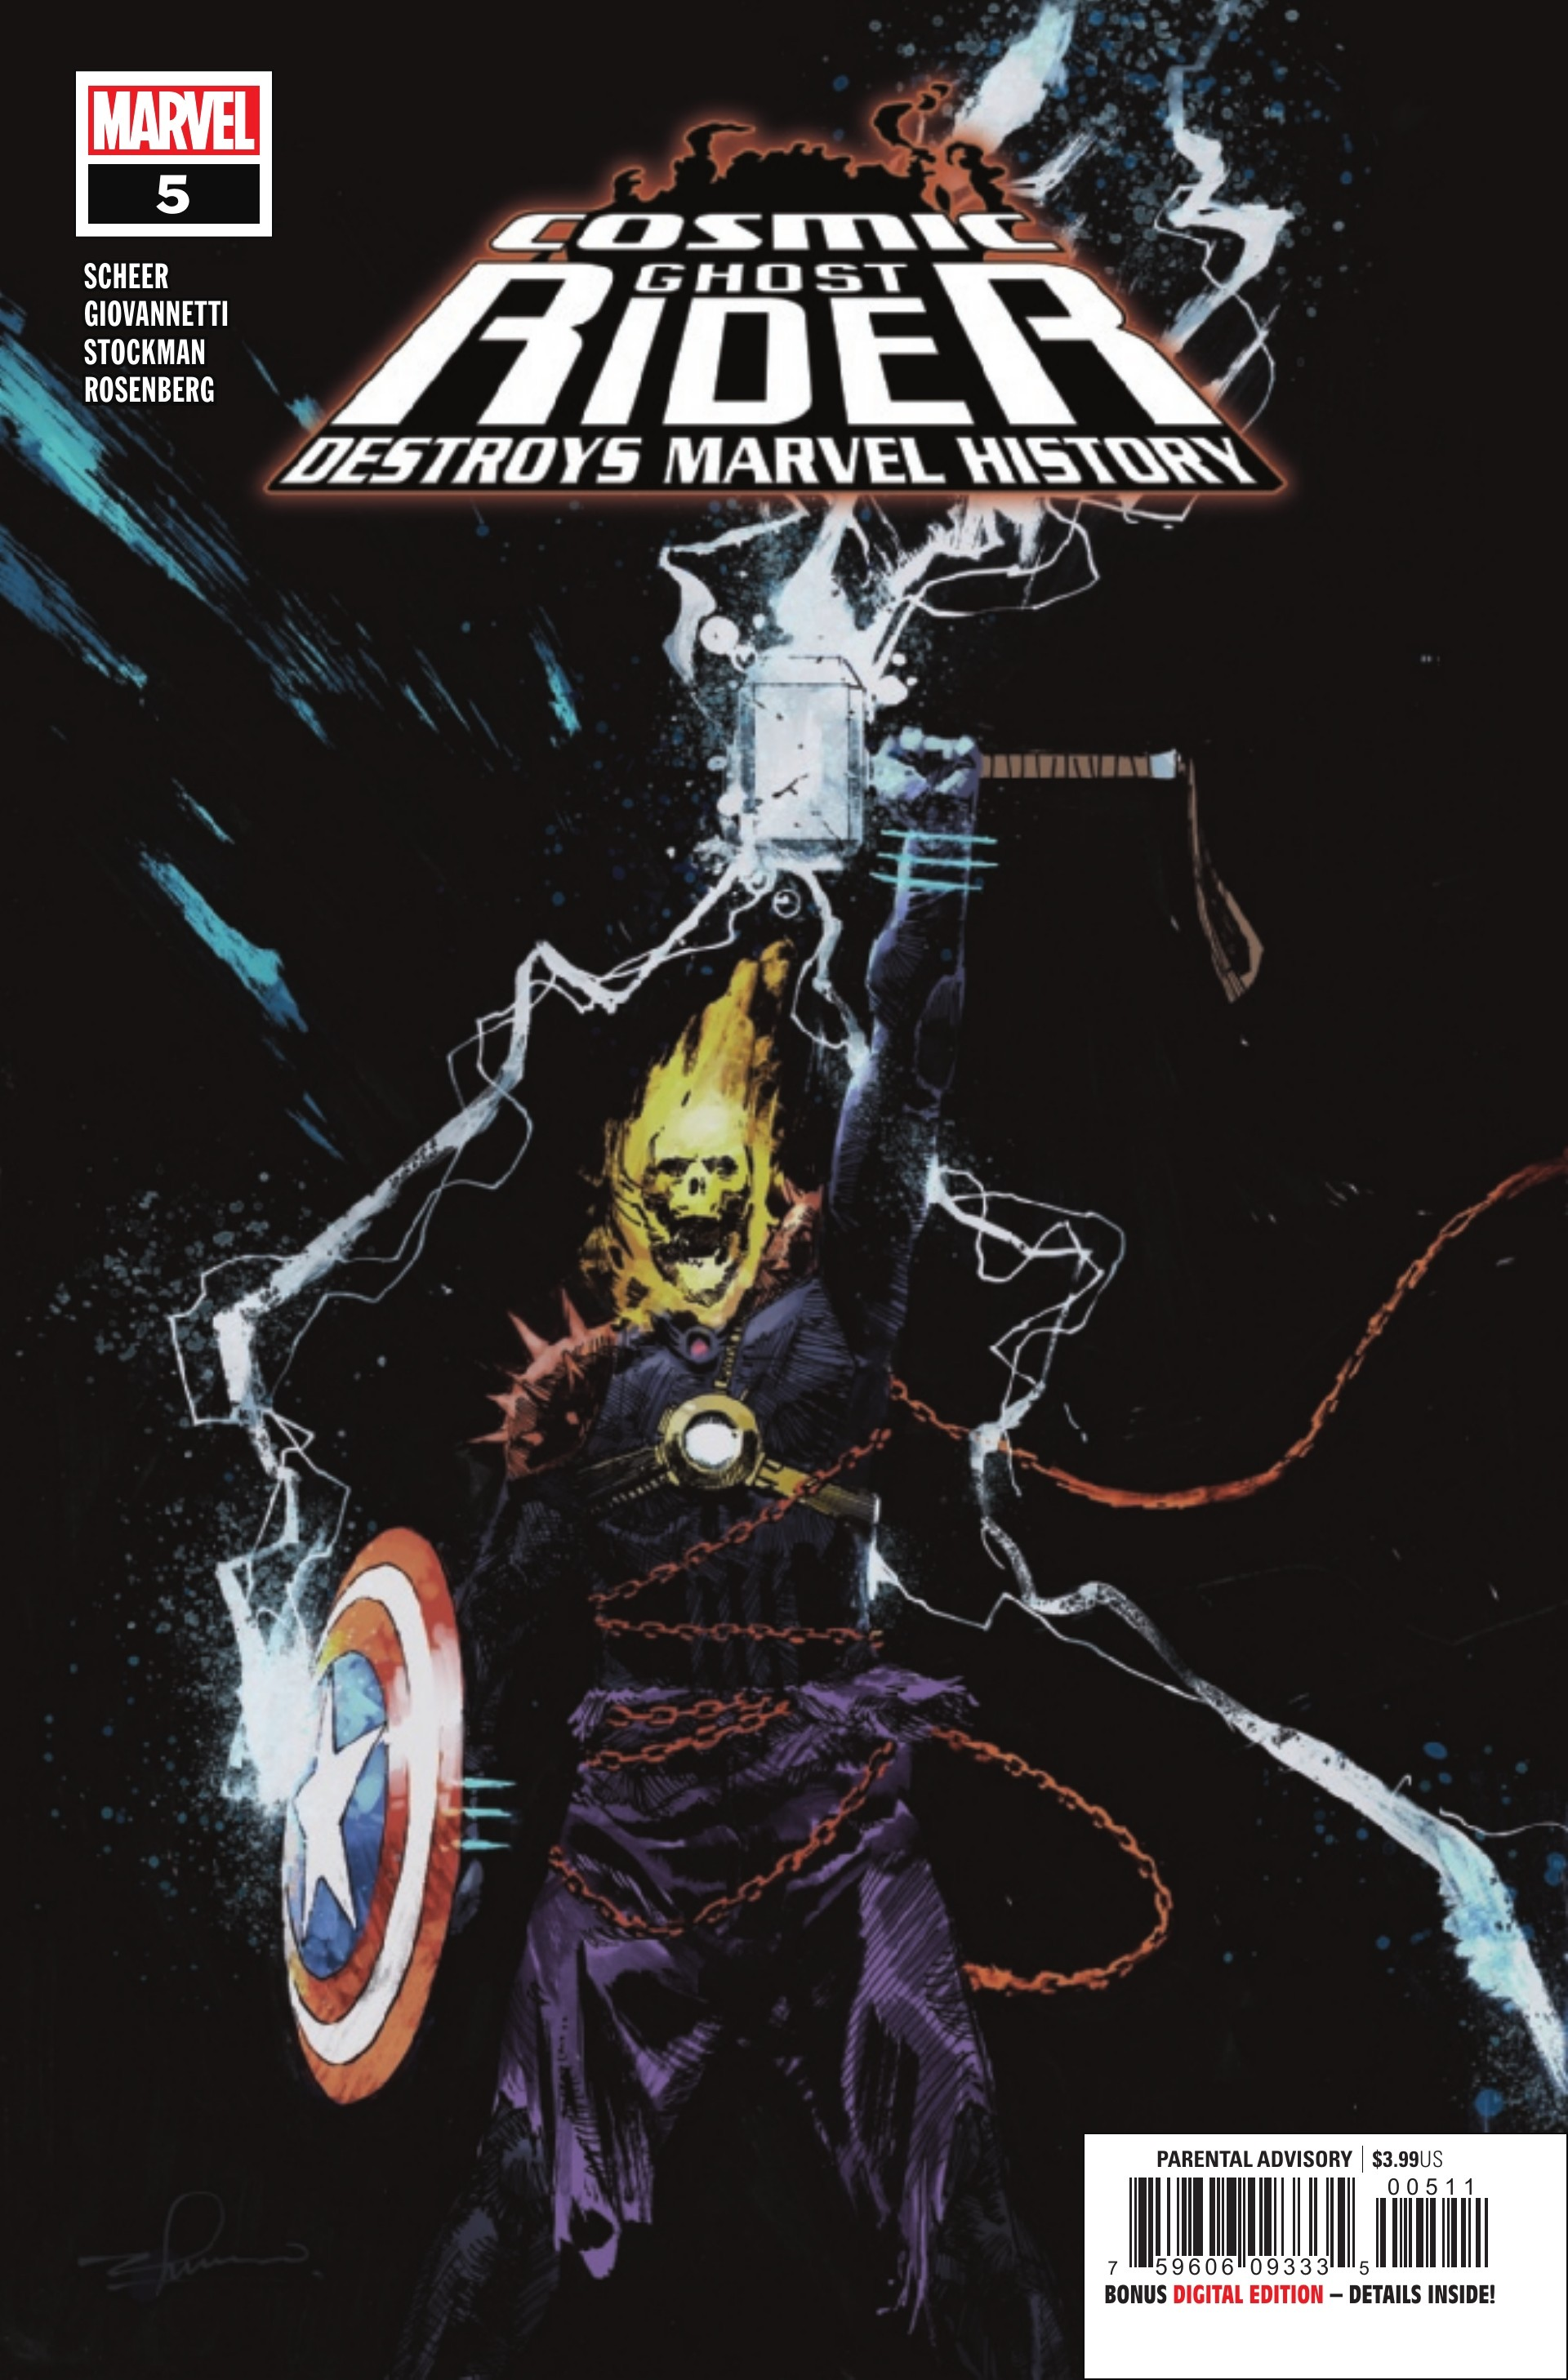 Preview: Cosmic Ghost Rider Destroys Marvel History #5 (of 6)